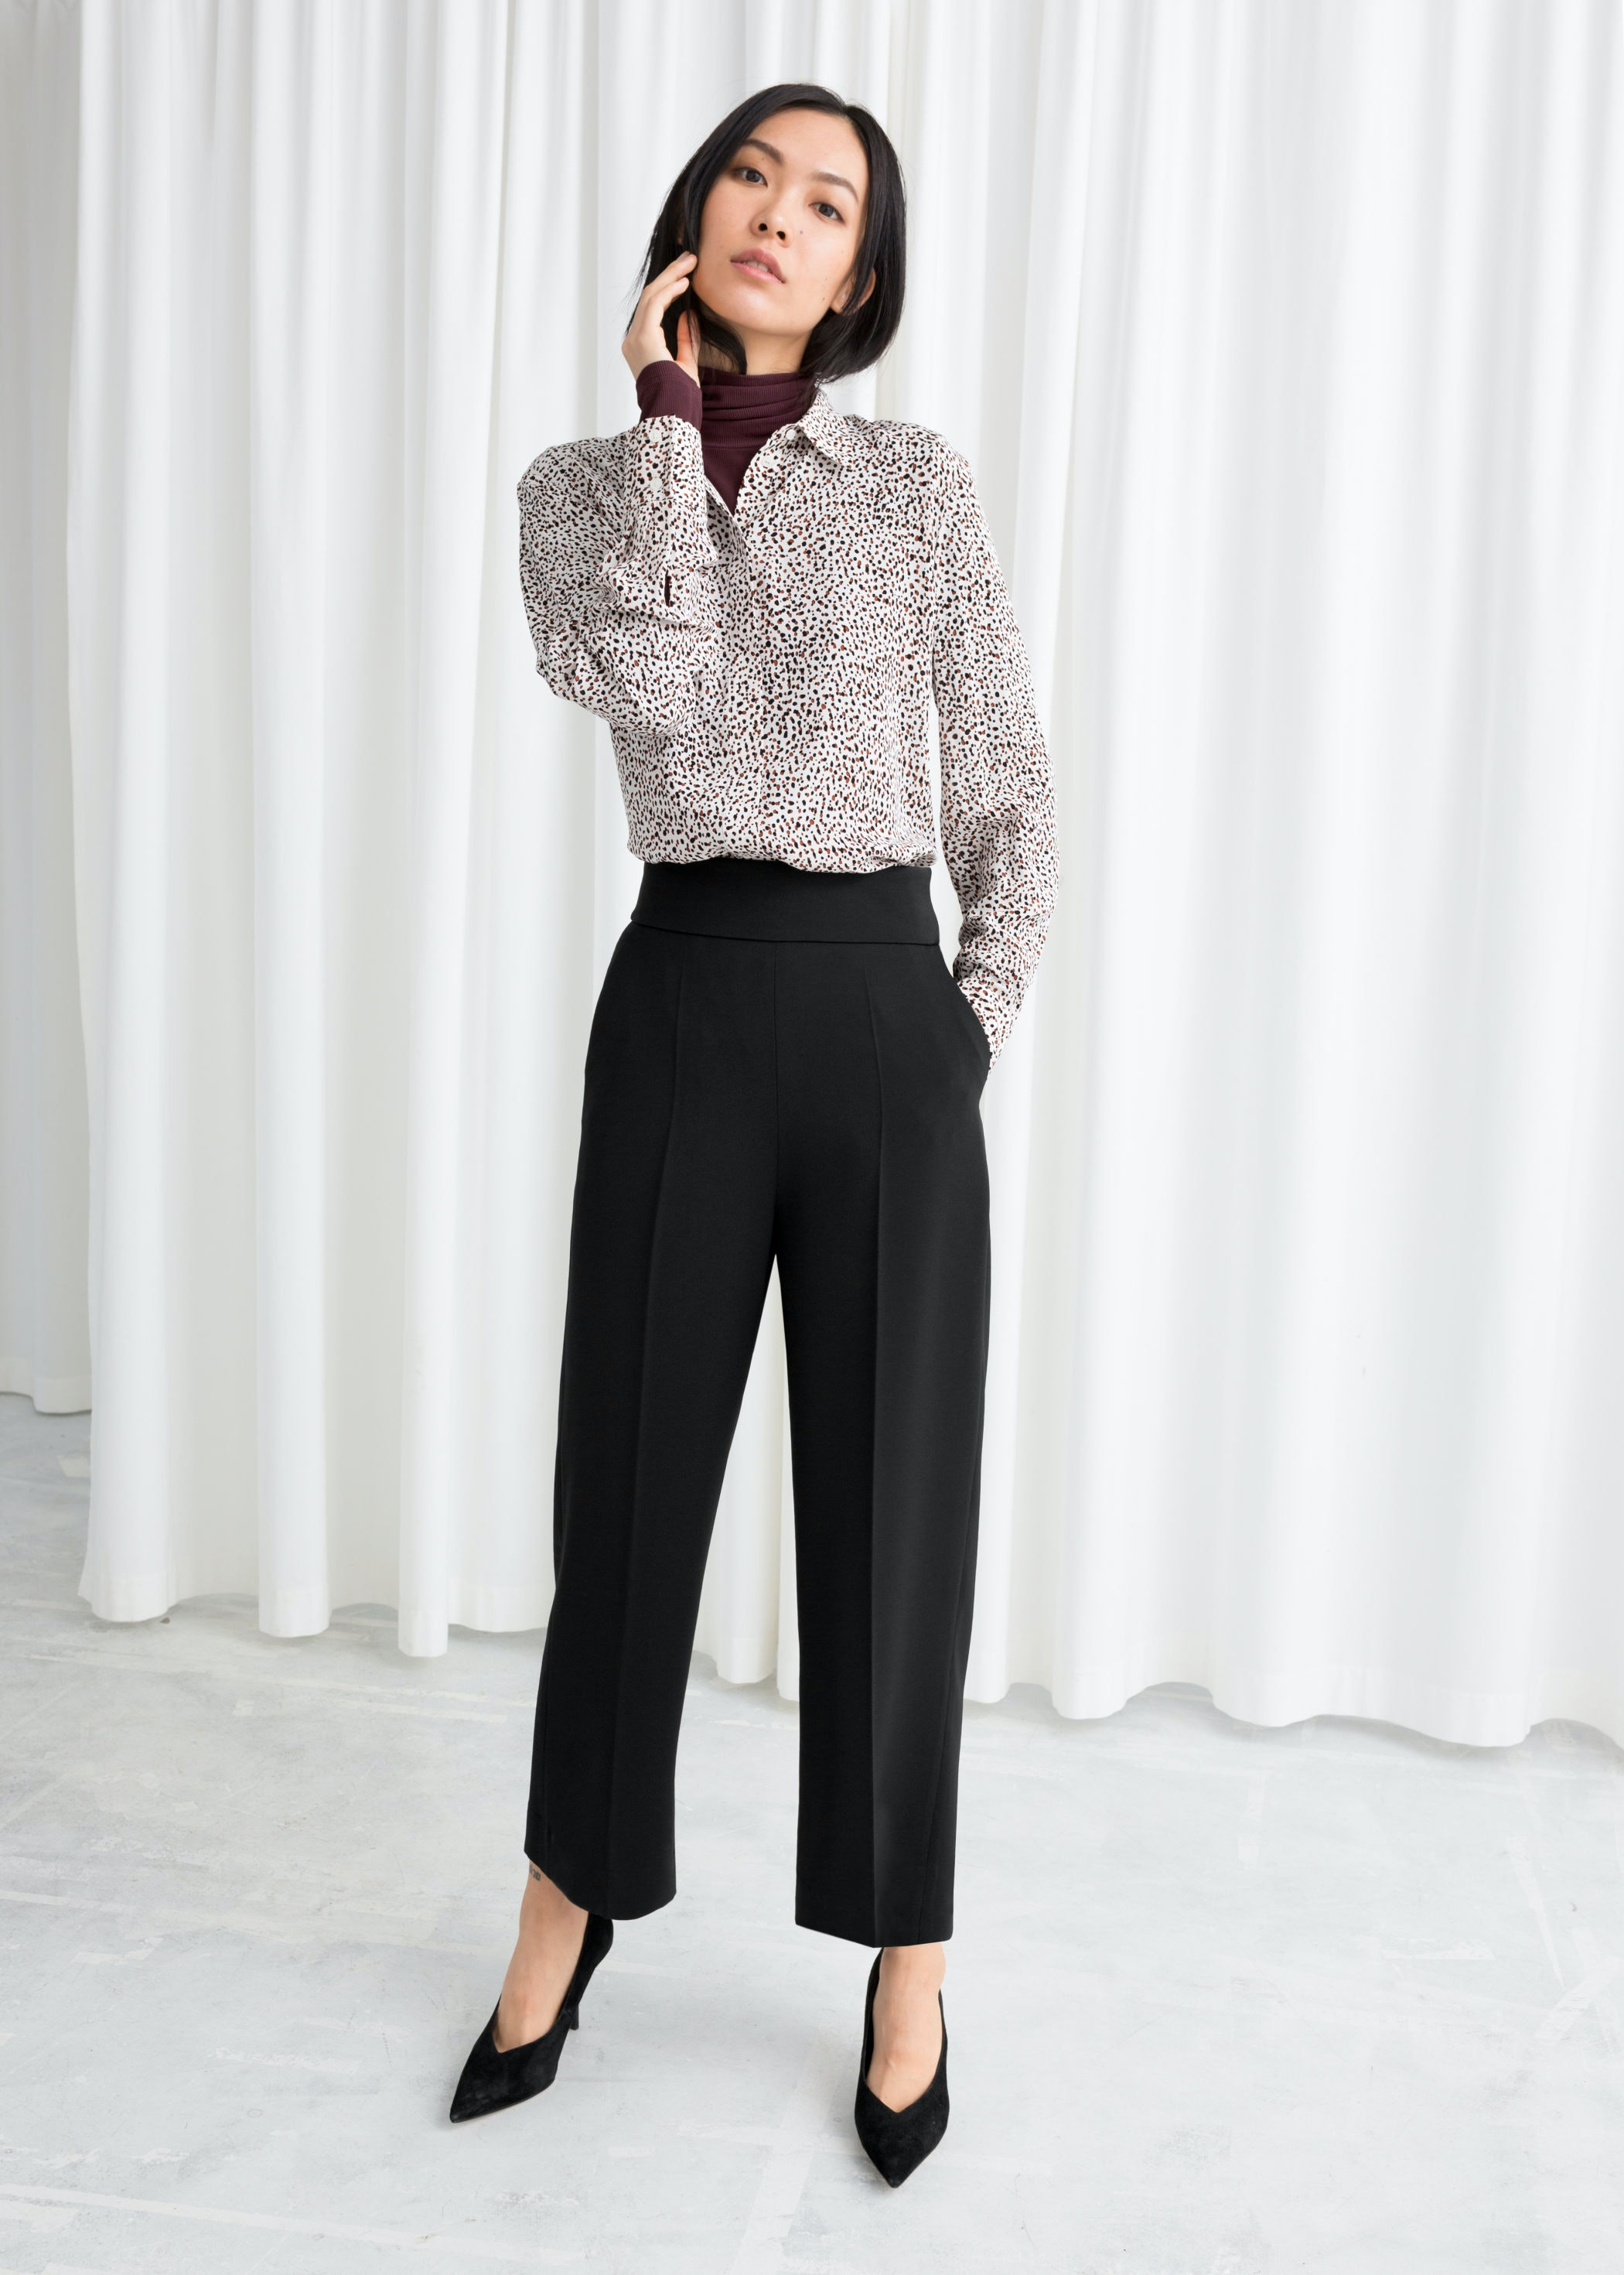 5caf67be68c603 Kate Middleton s Pussy Bow Blouse Workwear Look Can Easily Be Duplicated  For A Fraction Of Her £700 Budget